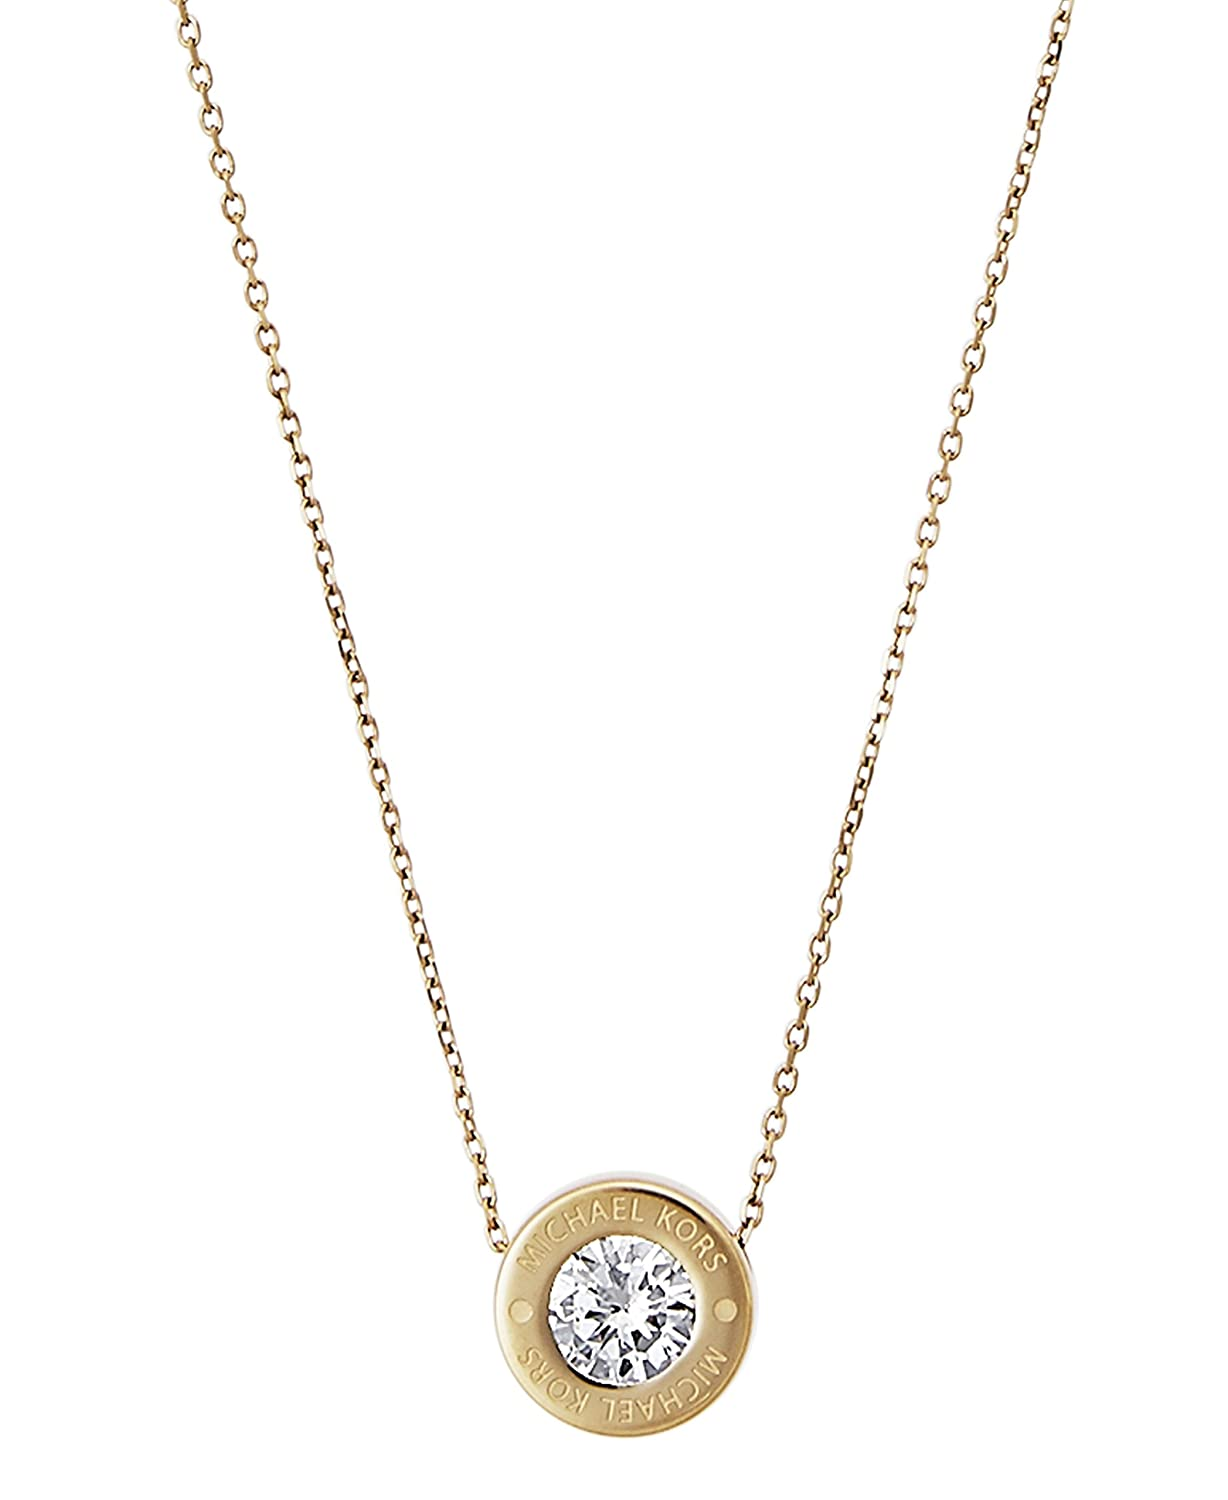 Michael Kors Women's Gold Necklace MKJ5340710 i1szvU